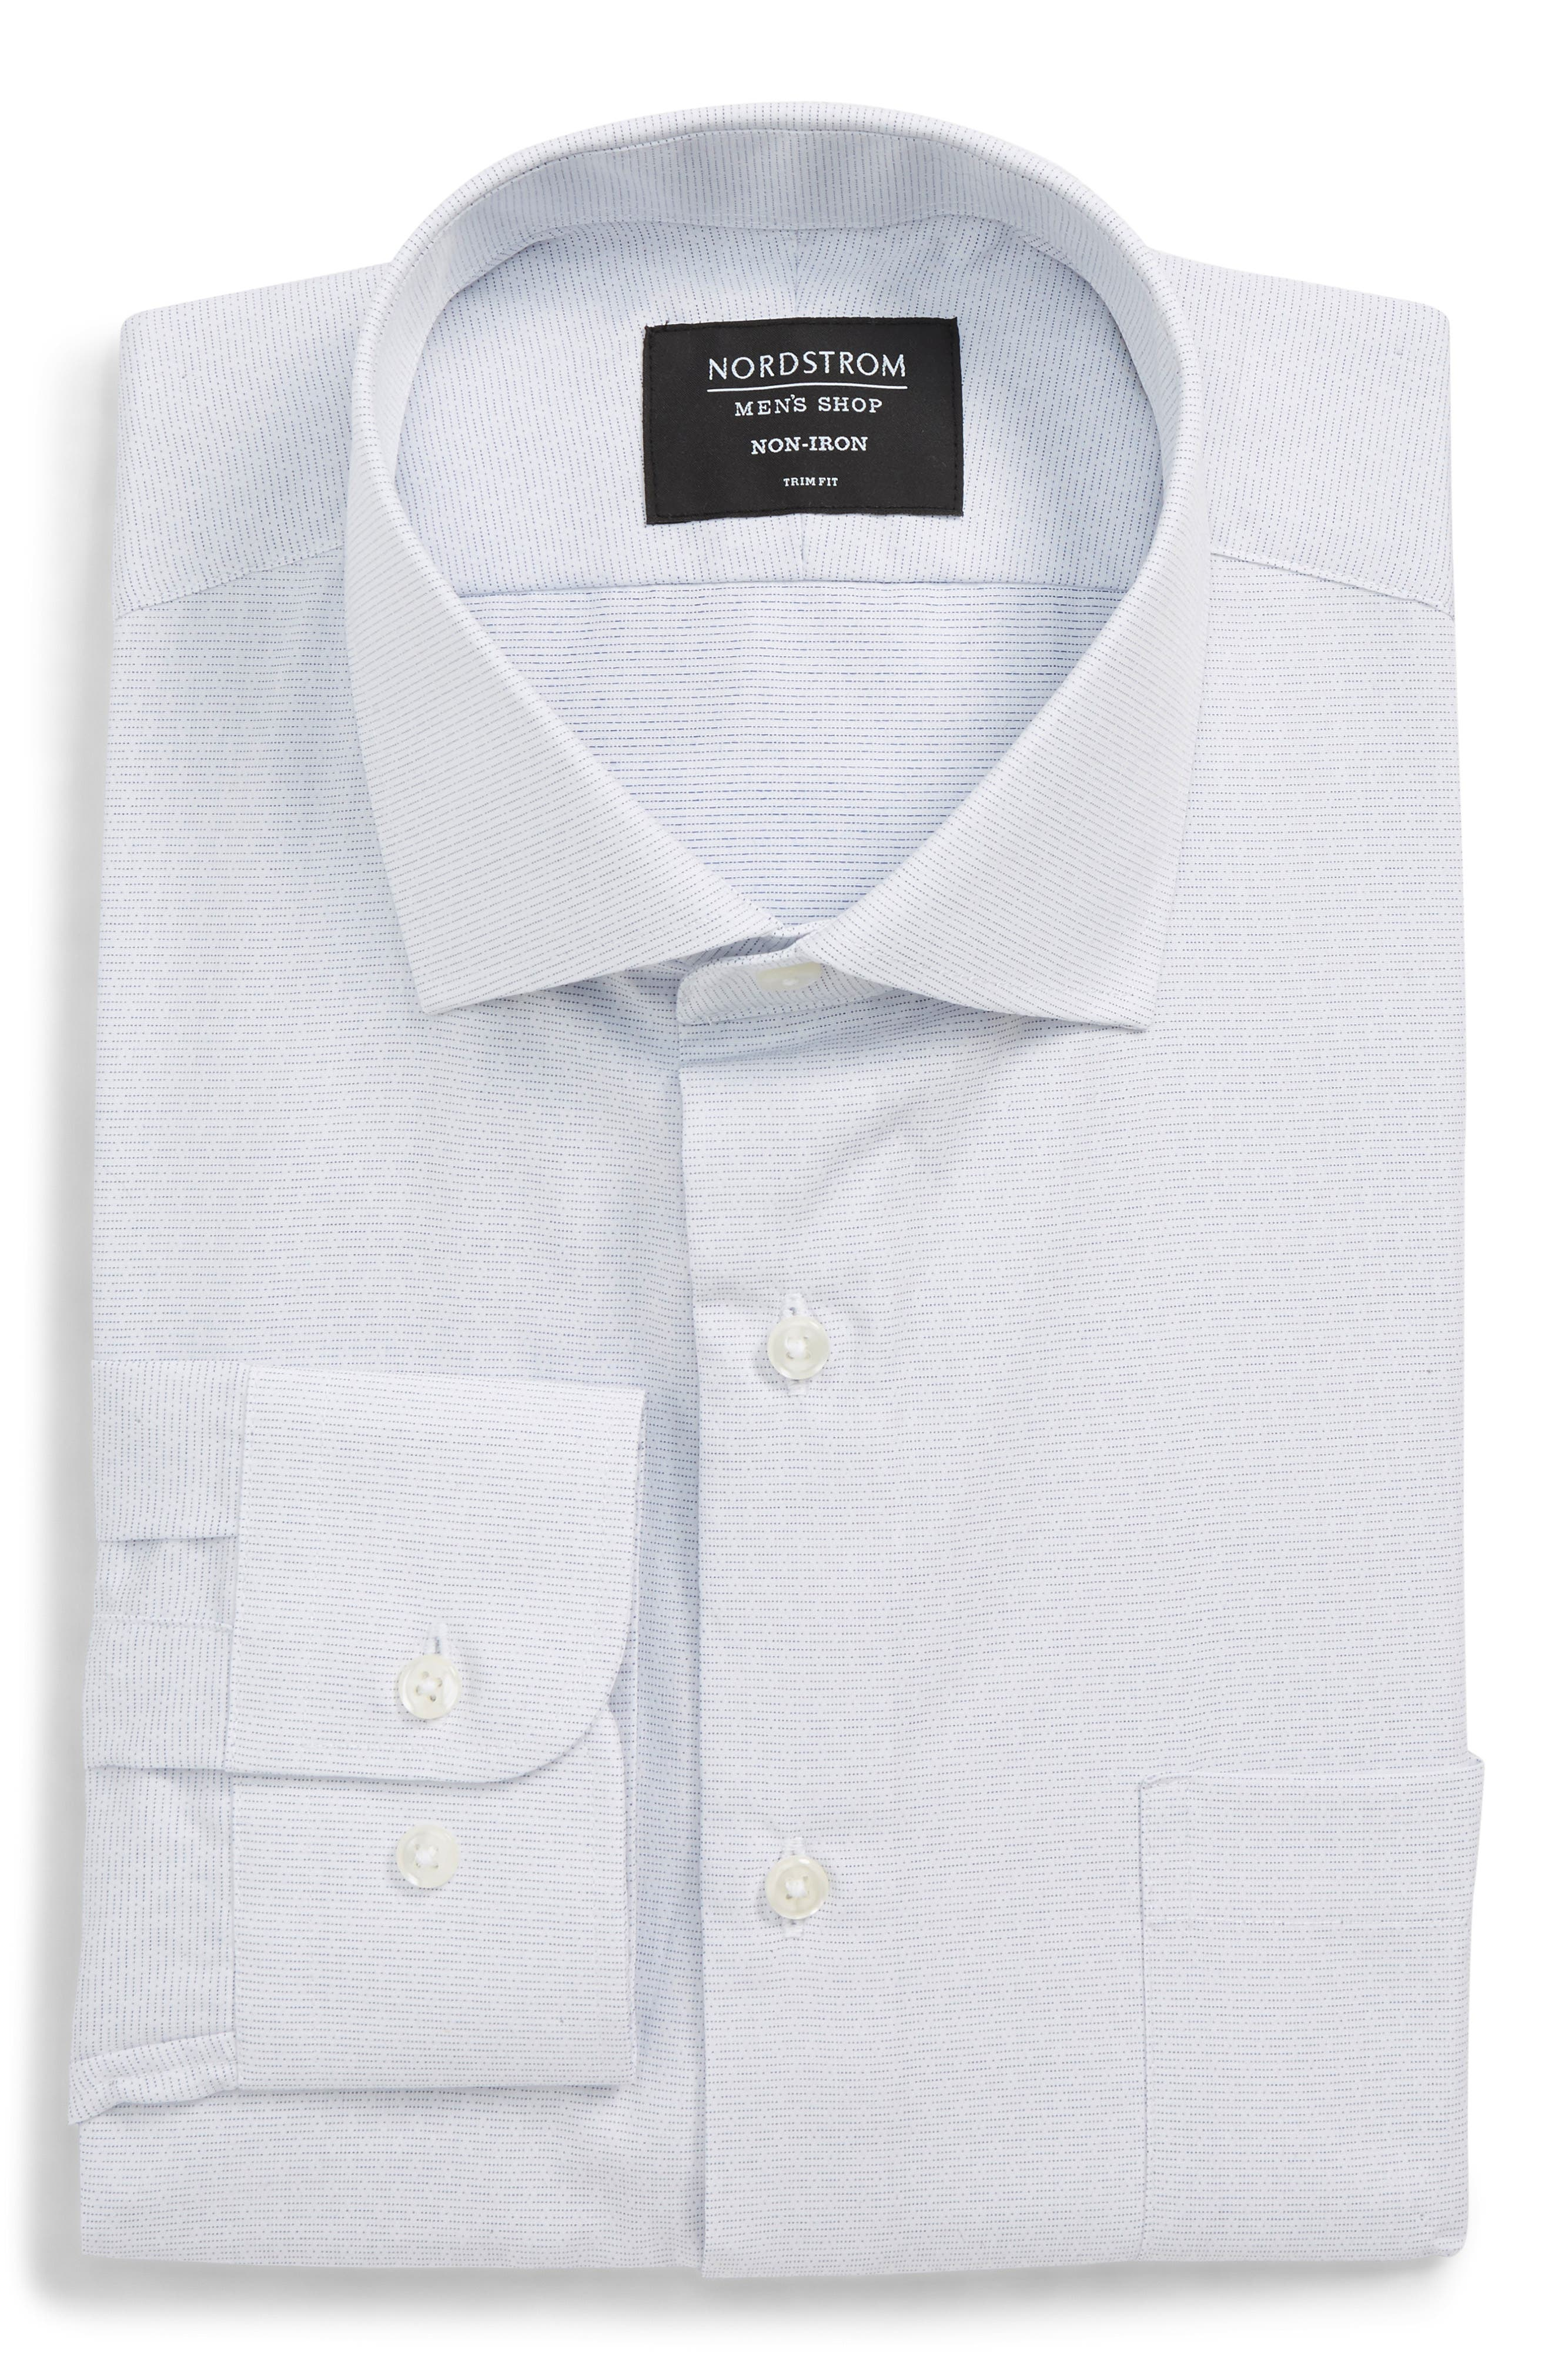 Trim Fit Non-Iron Print Dress Shirt,                             Alternate thumbnail 5, color,                             050